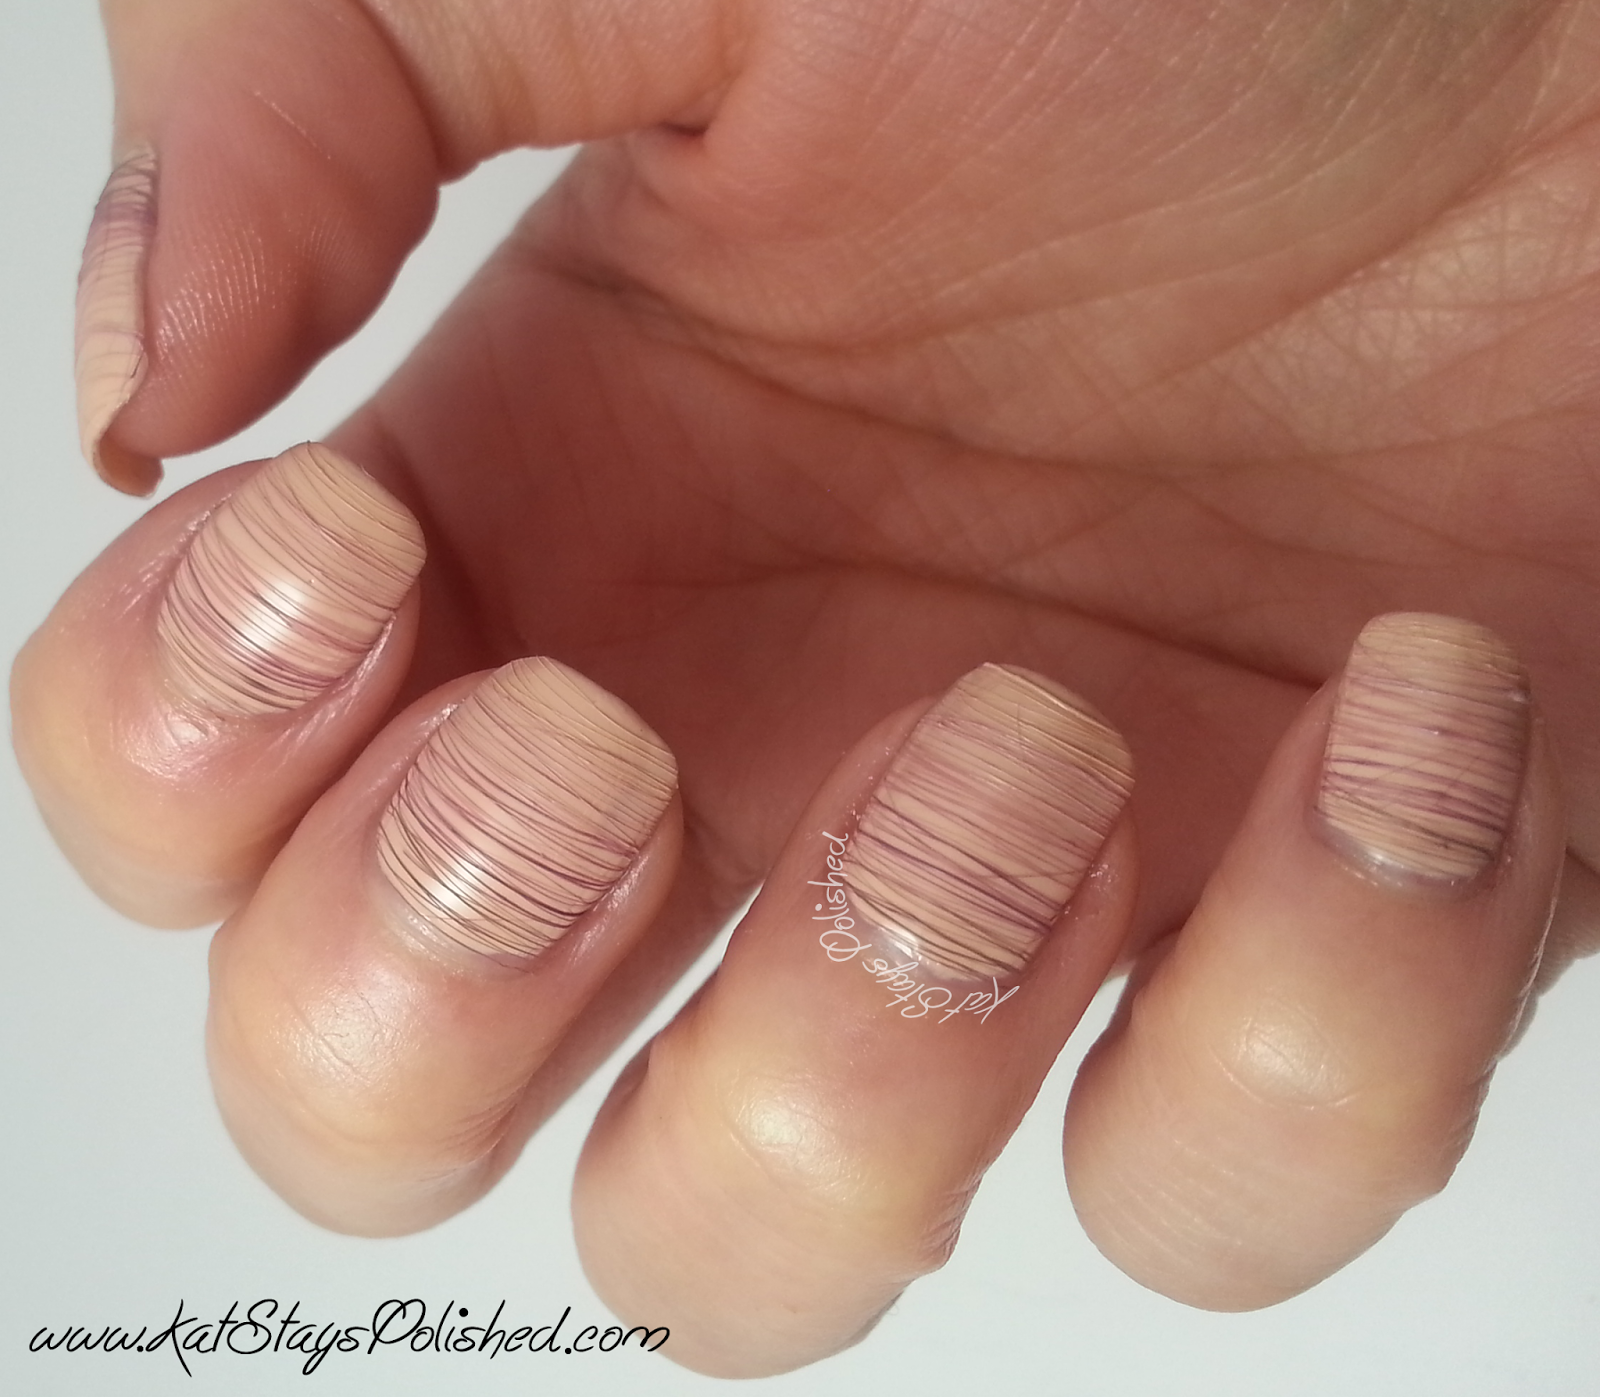 Zoya Naturel - Ombre Spun Sugar Nail Art - No Top Coat | Kat Stays Polished